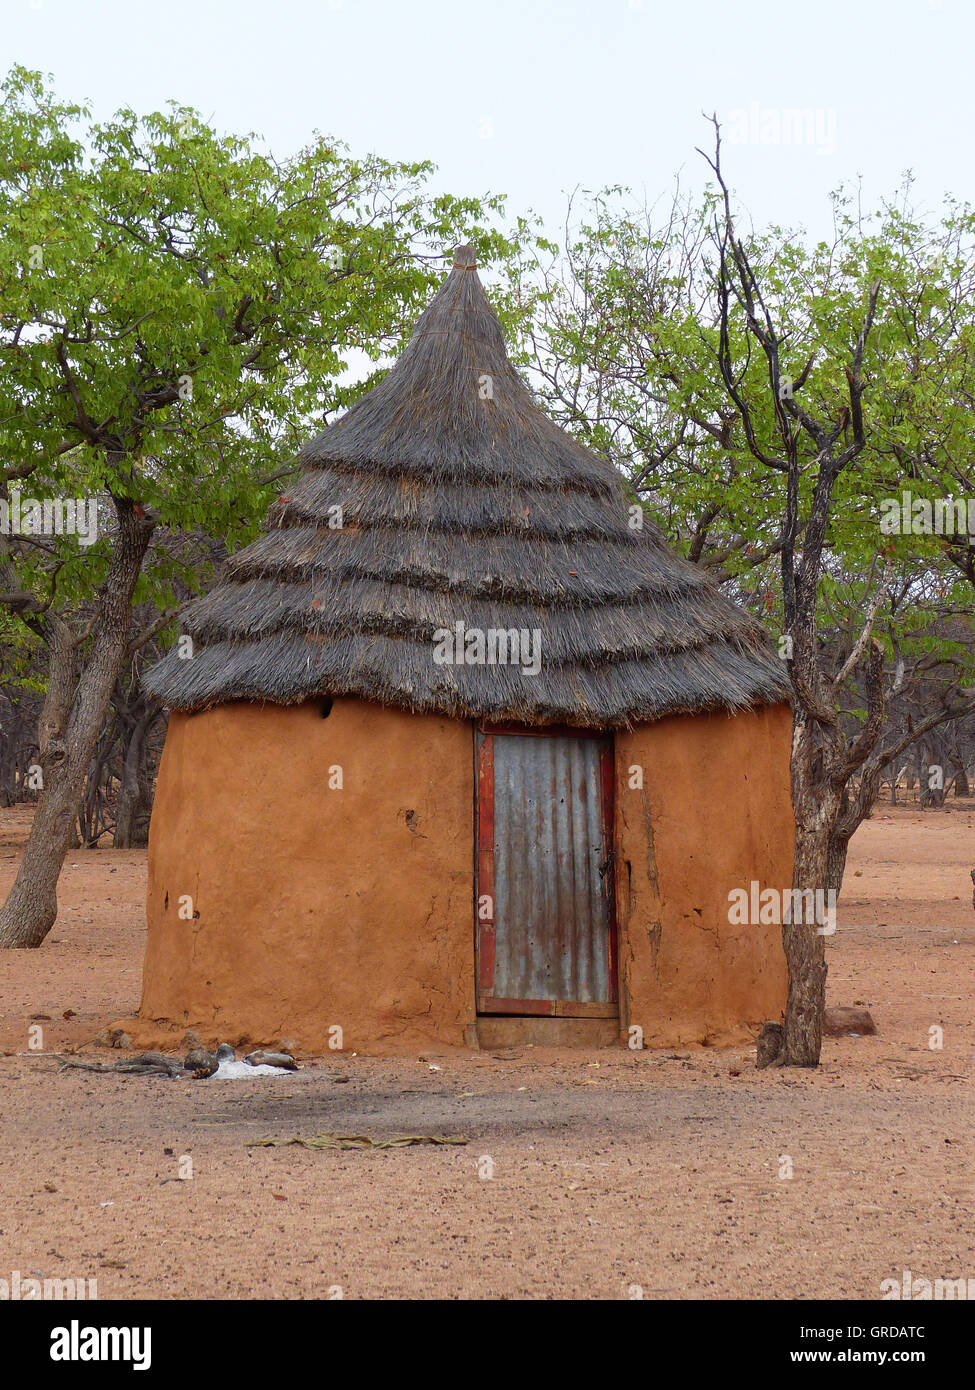 Residential Hut At The Himba - Stock Image